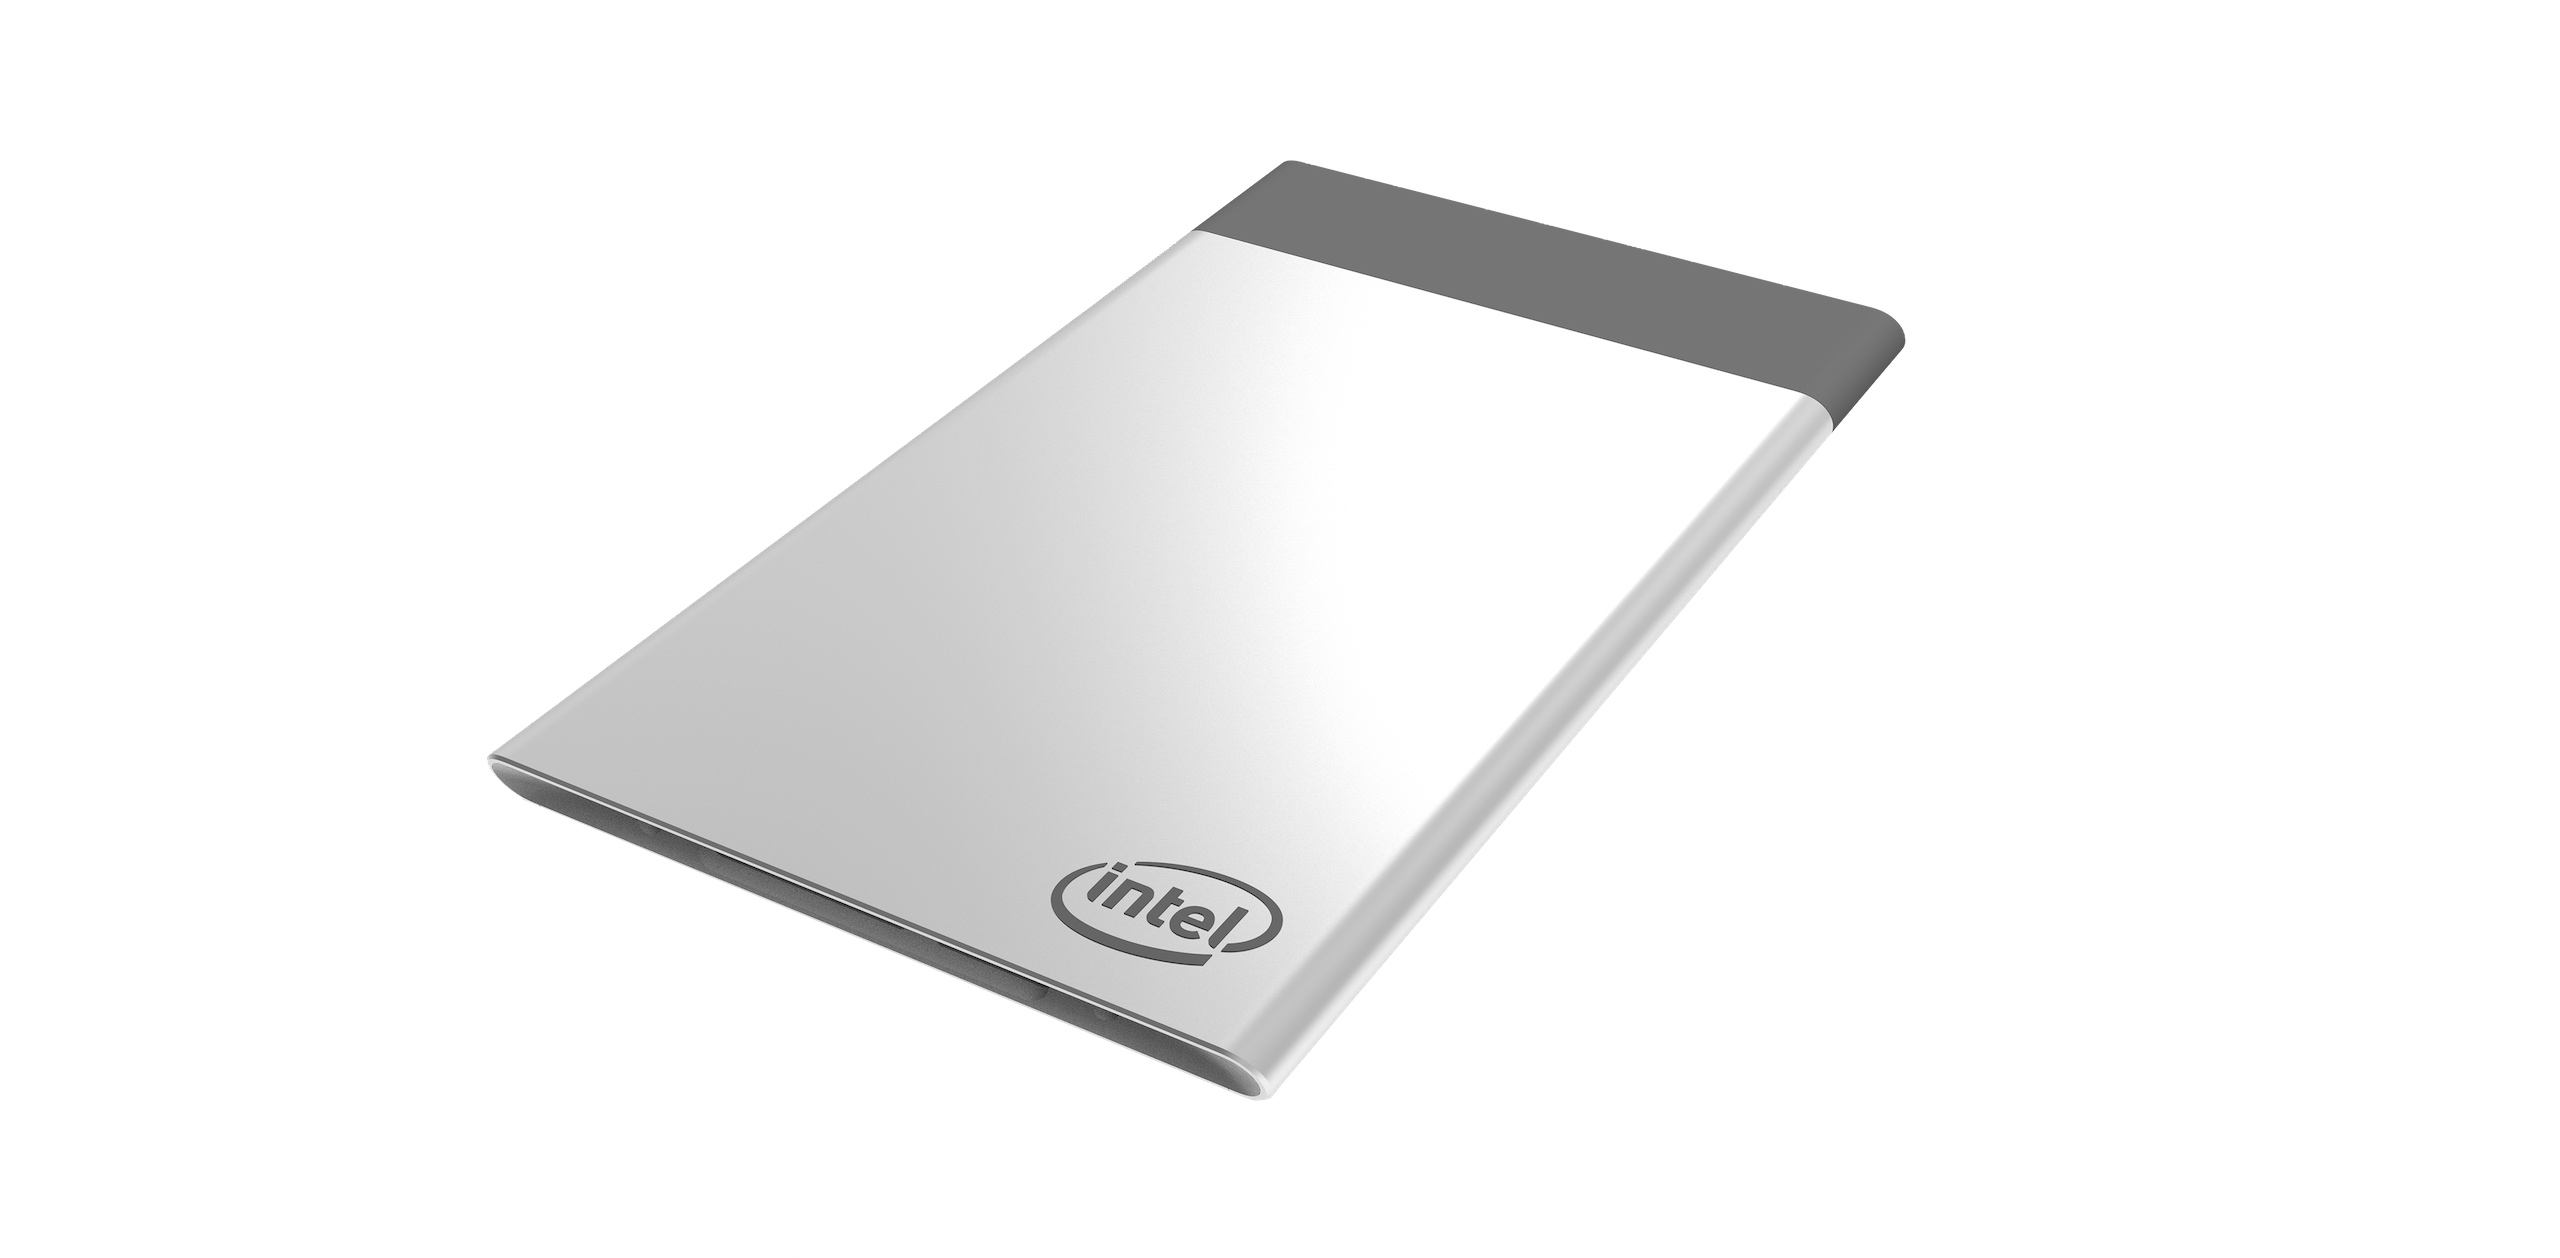 intel s compute card is a pc that can fit in your wallet ars technica. Black Bedroom Furniture Sets. Home Design Ideas